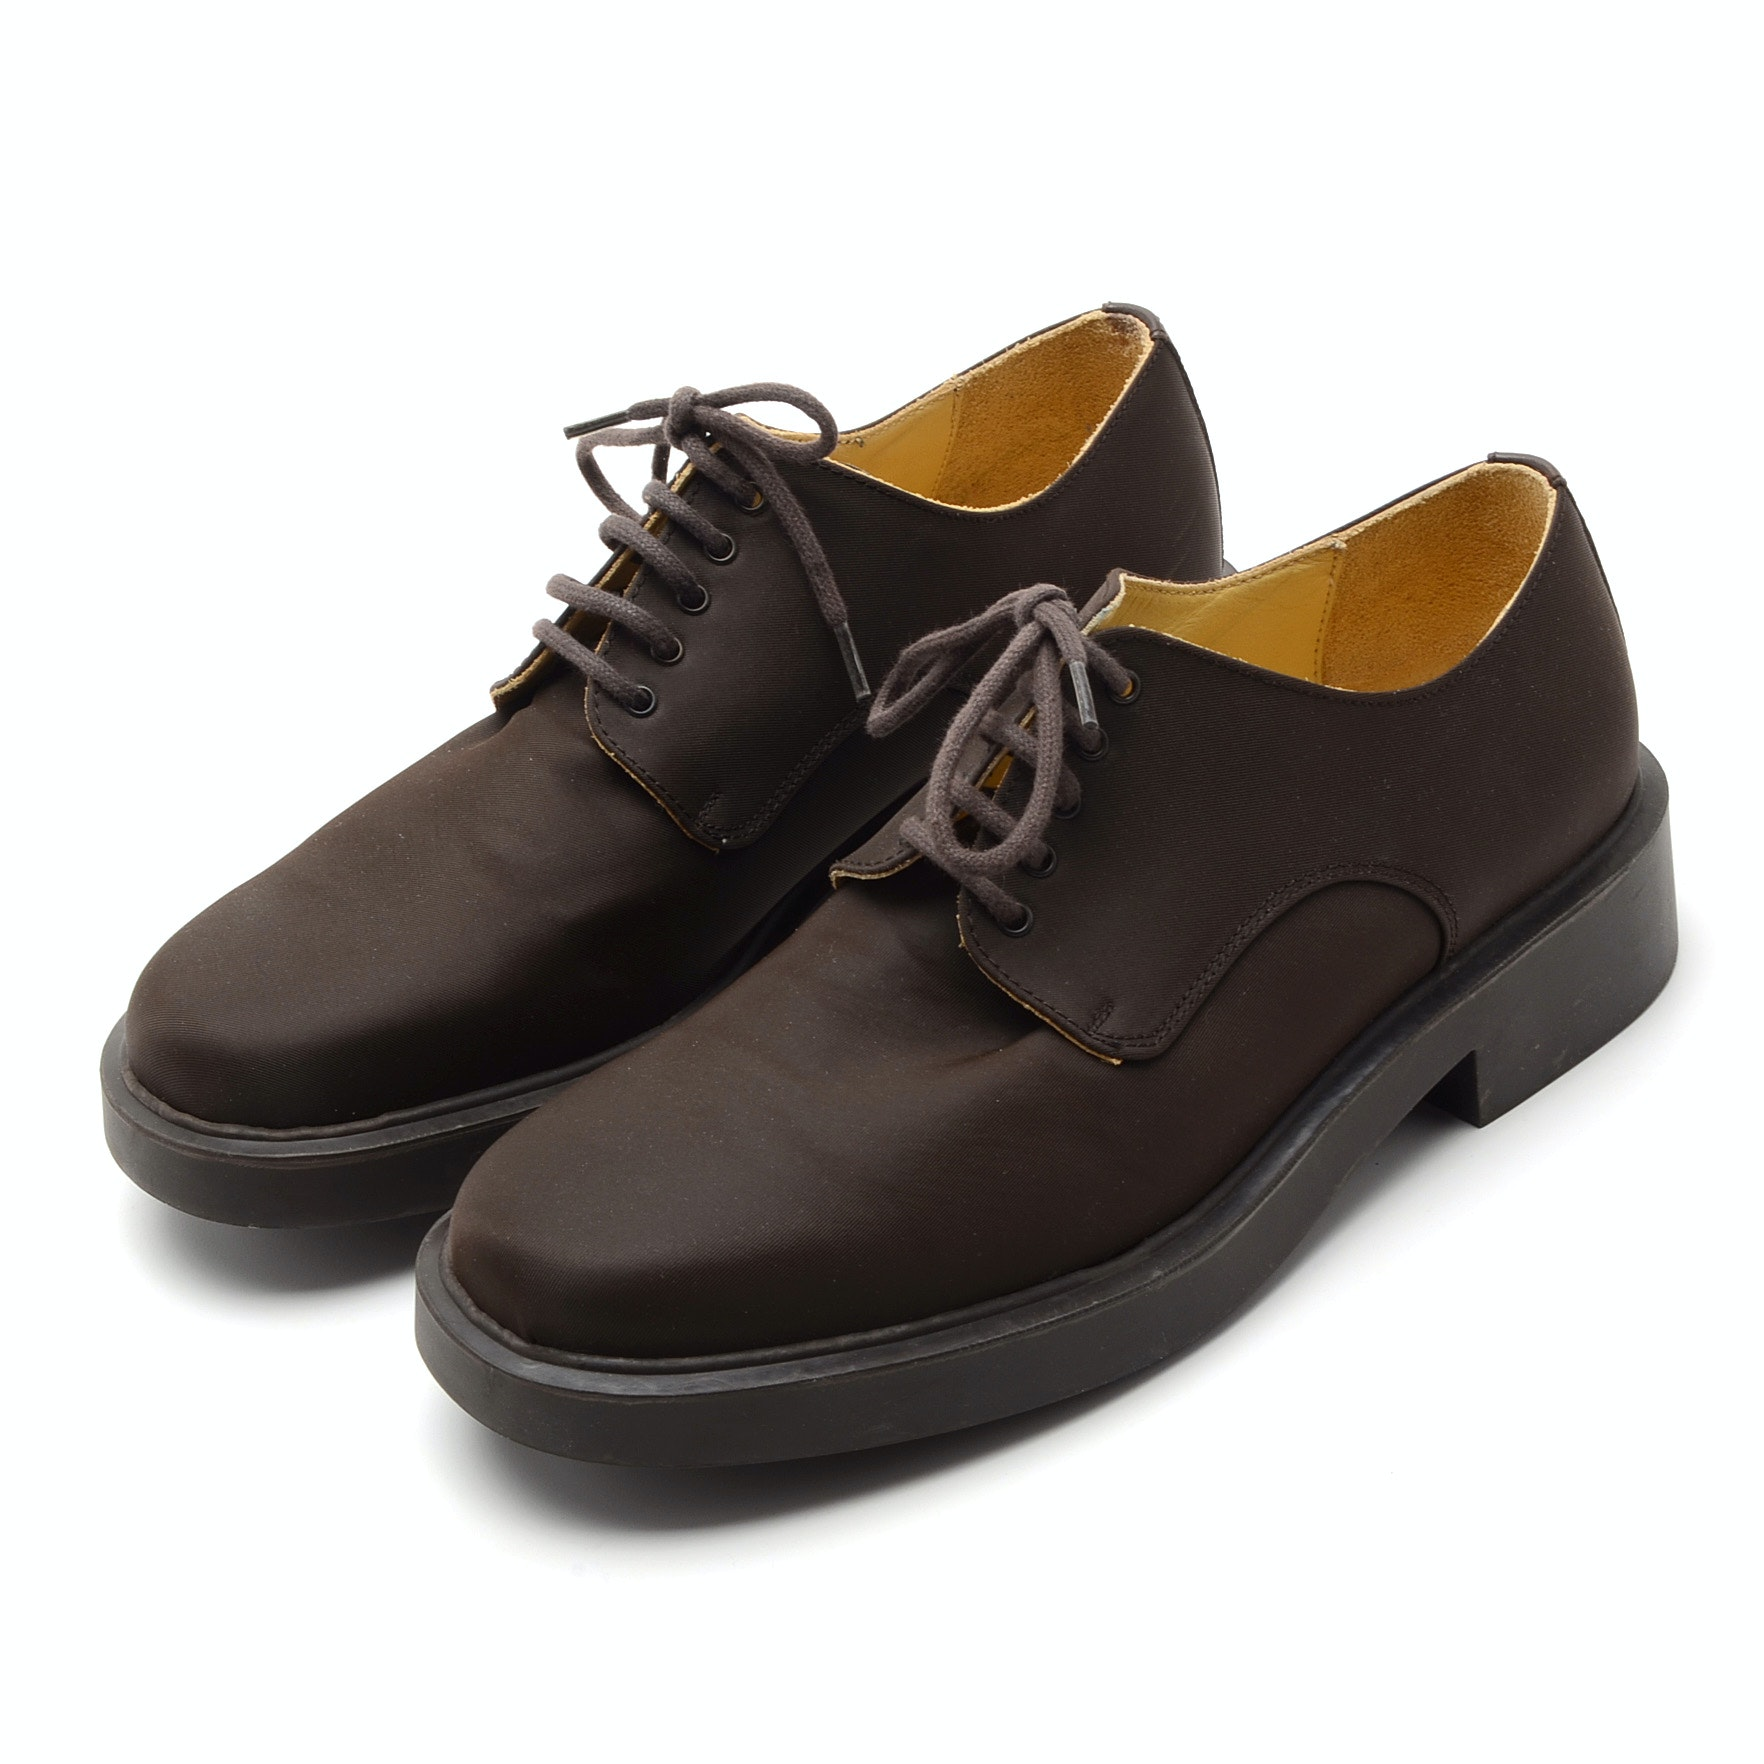 Kenzo Mens Lace-Up Oxfords in Brown Waterproof Nylon, Made in France